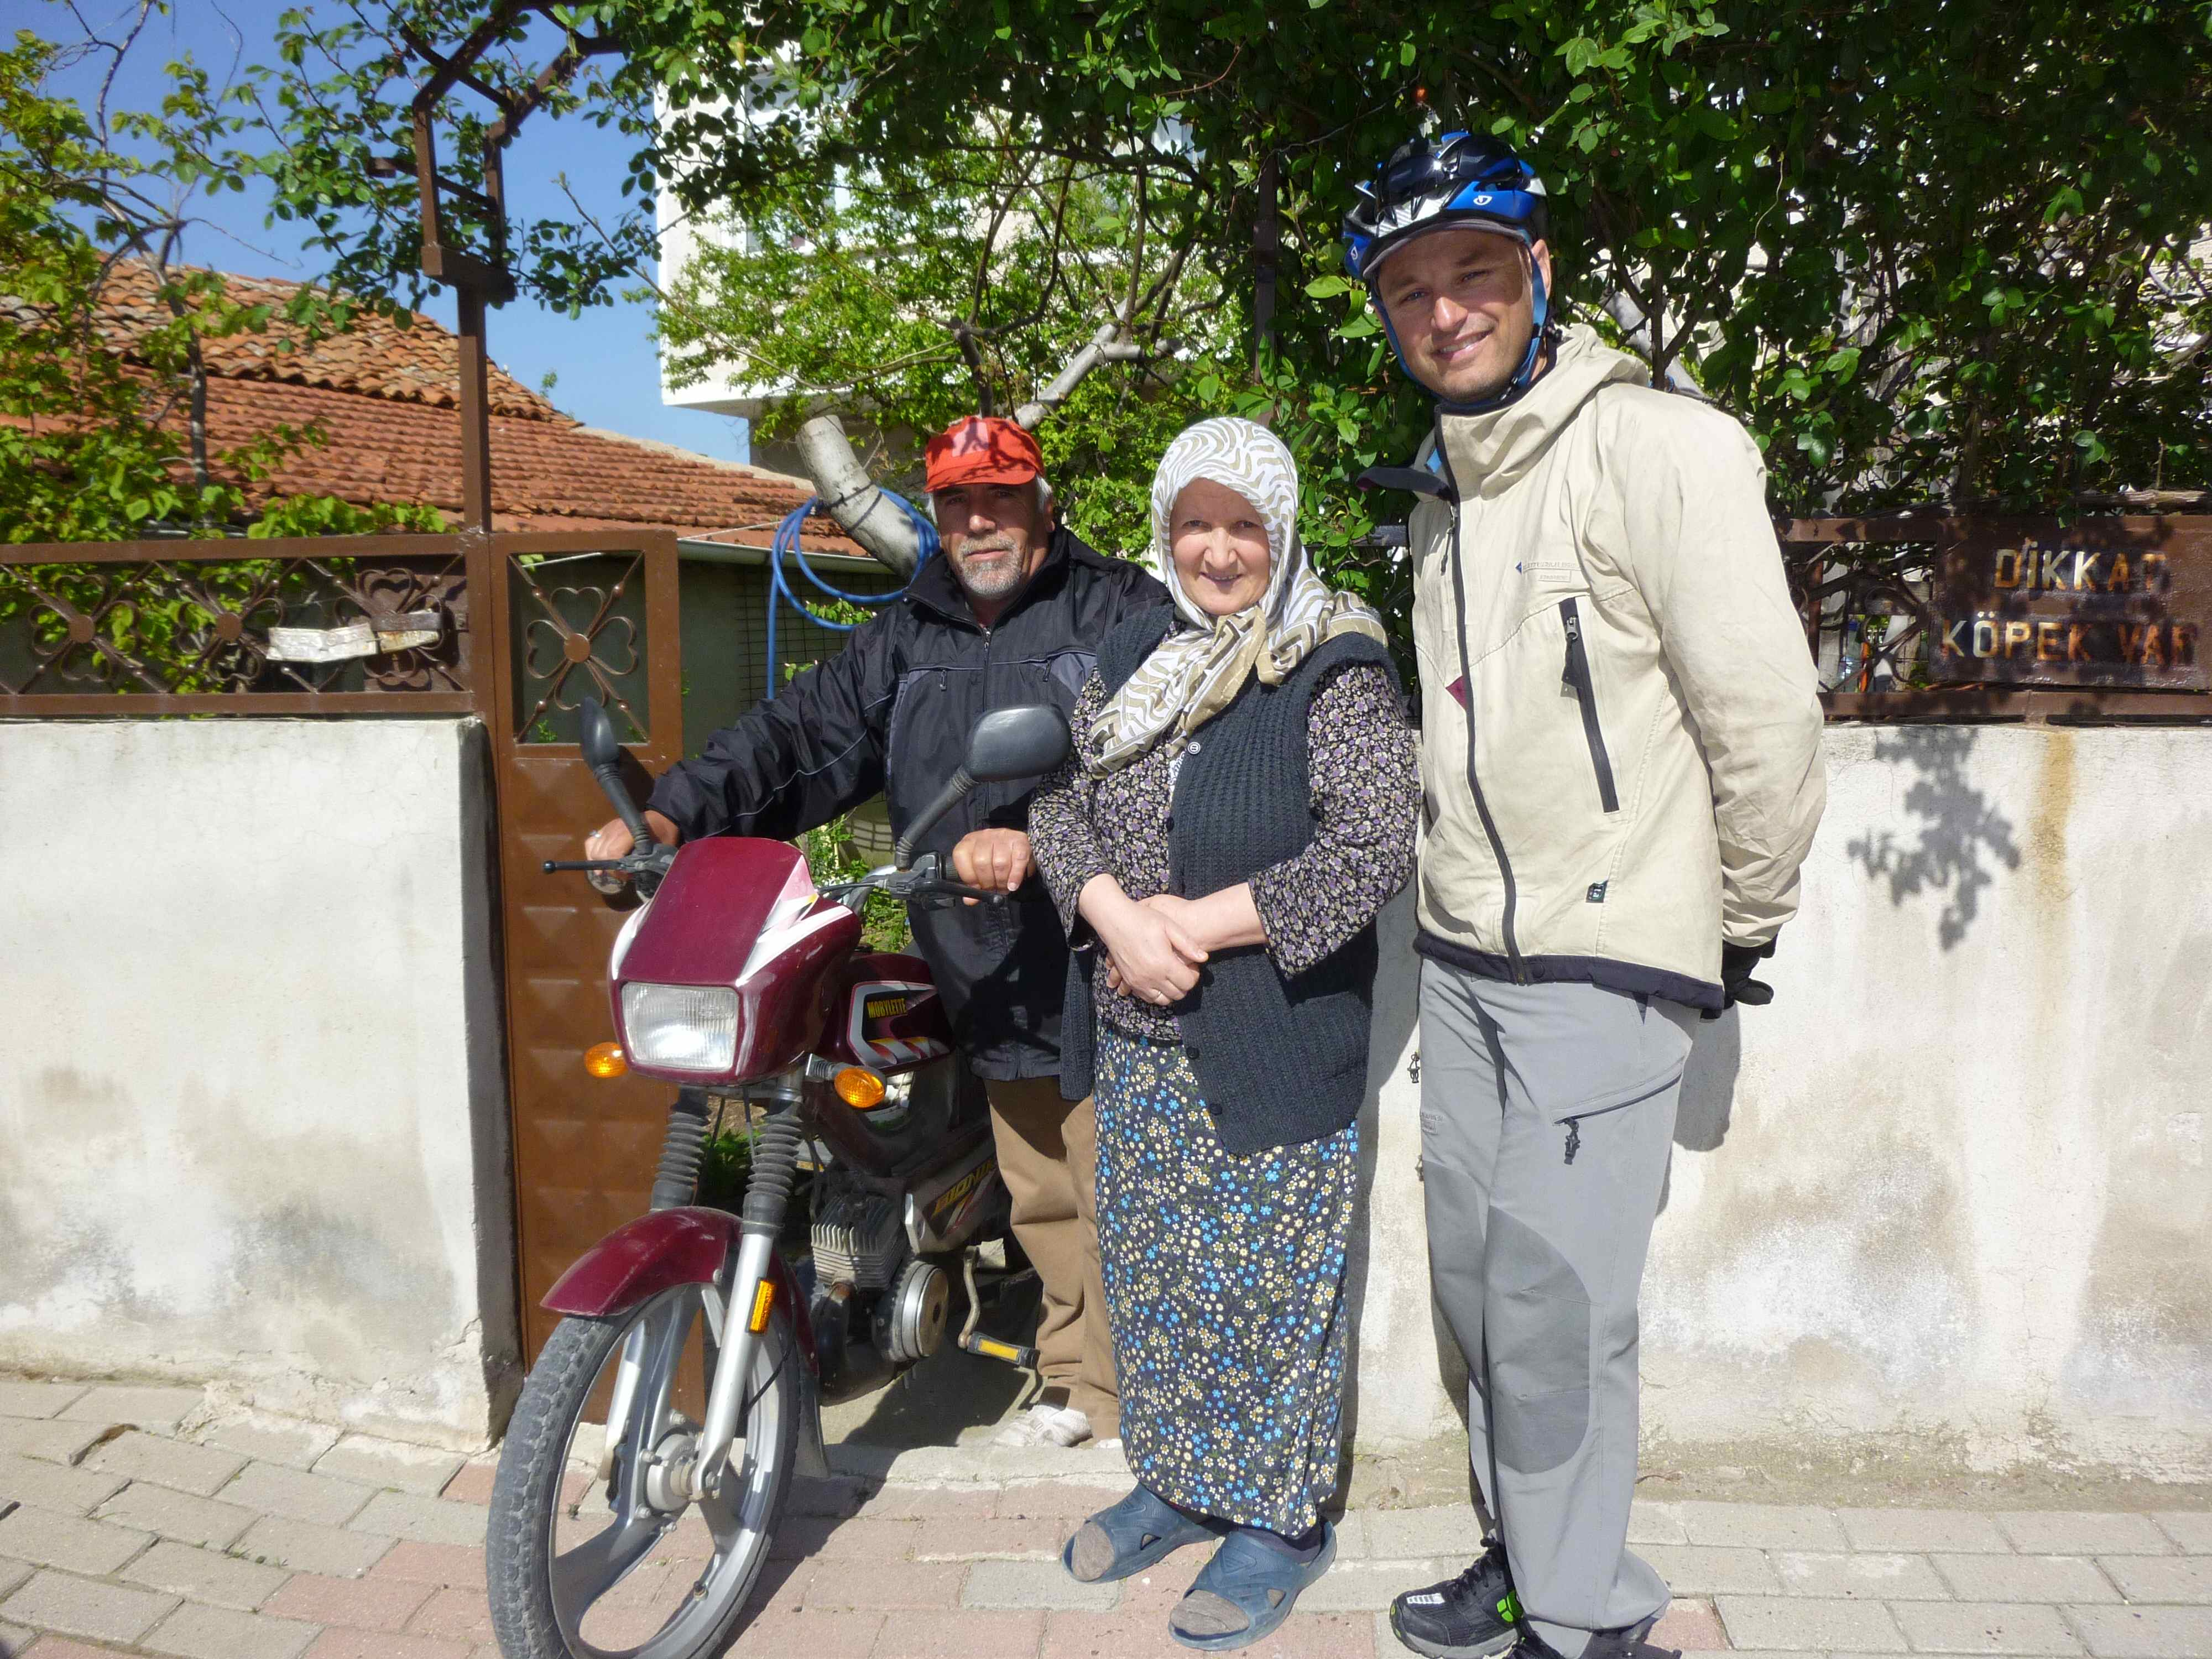 Selcuk's mom in the middle and dad ready to guide us out of town